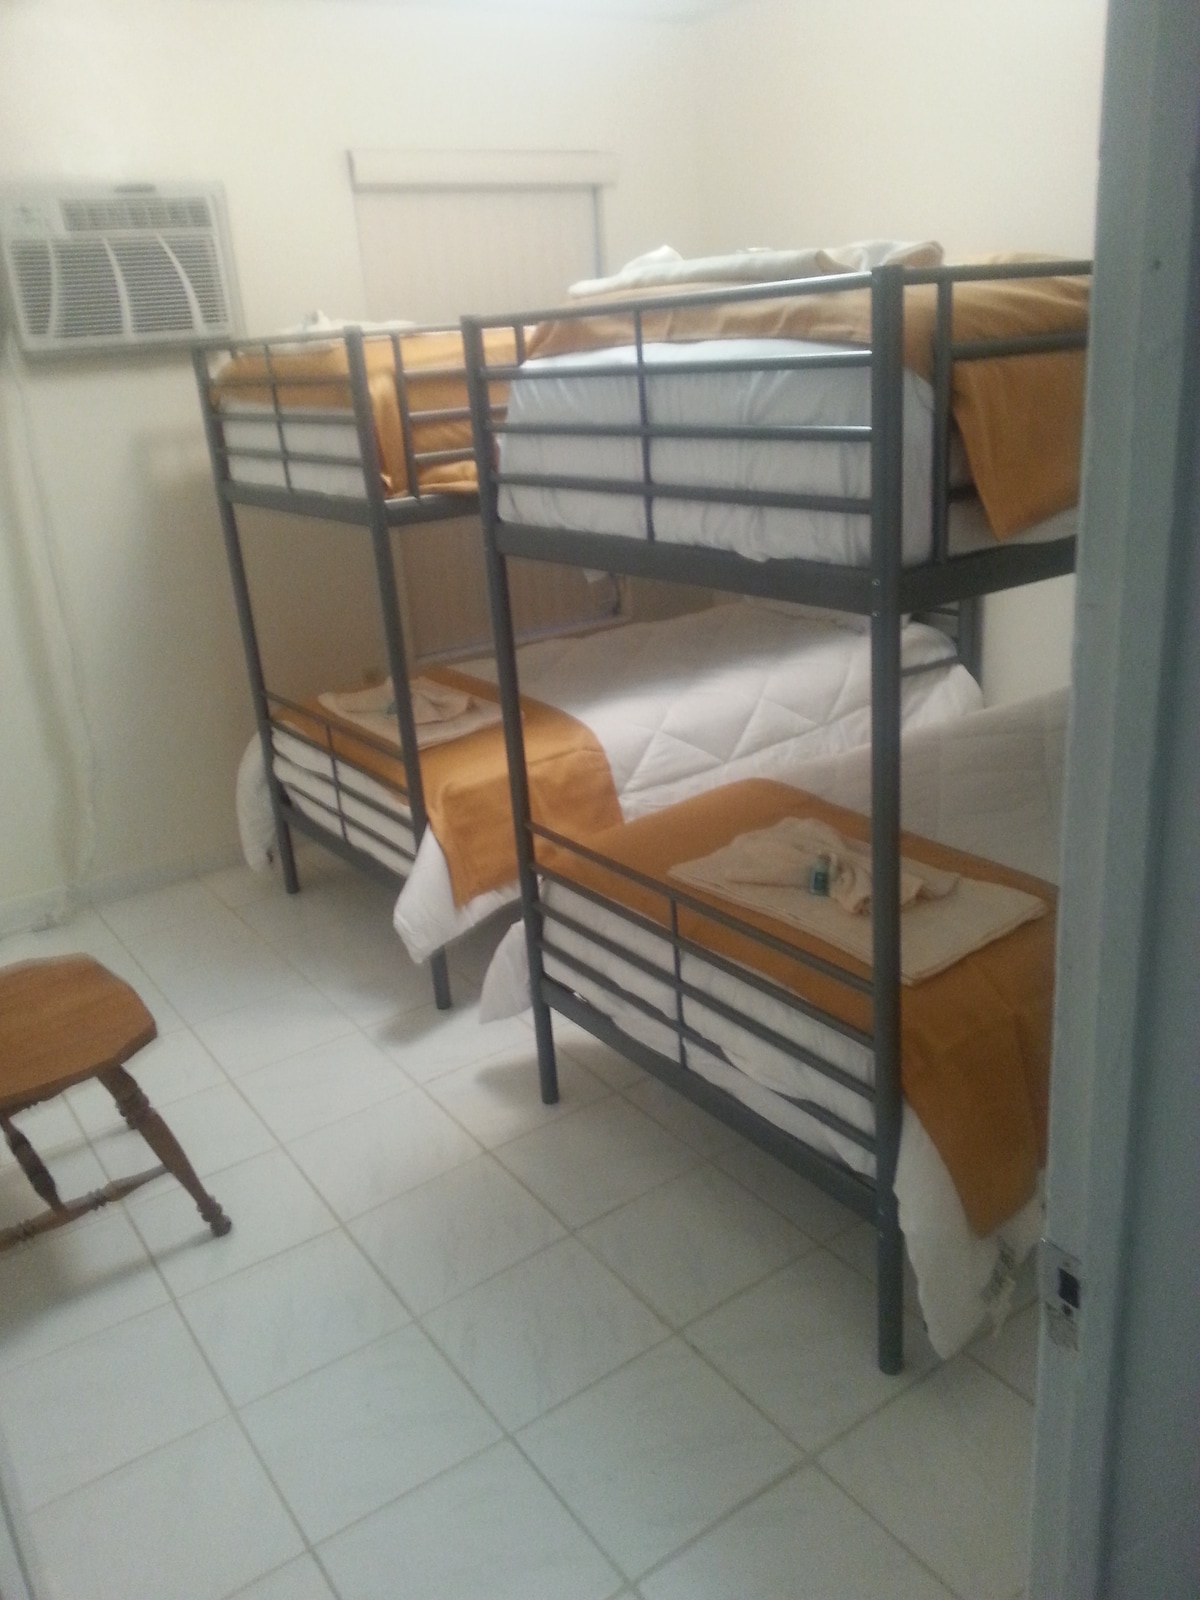 Bed 6 Dormitory Hostel Style